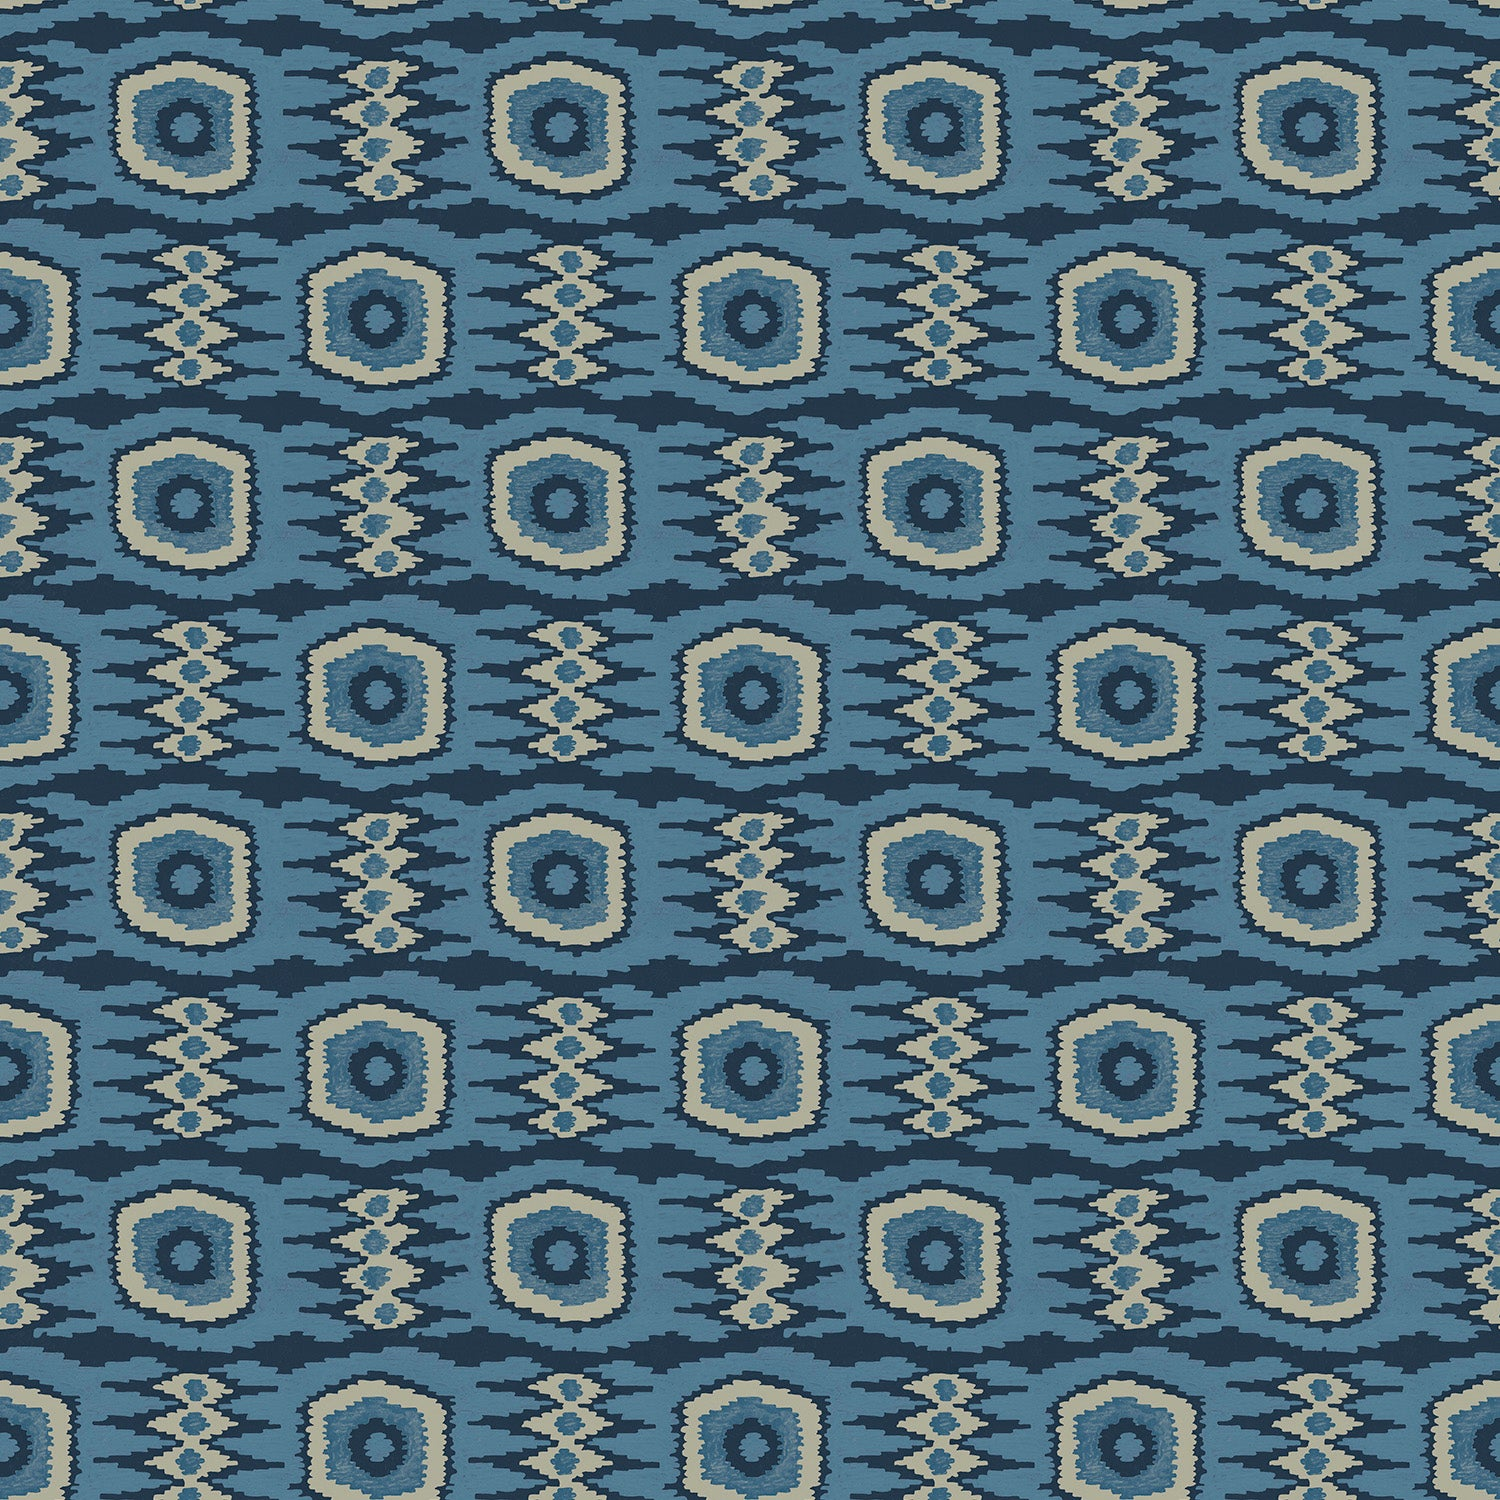 Fabric swatch of an abstract blue stain resistant velvet fabric for curtains and upholstery